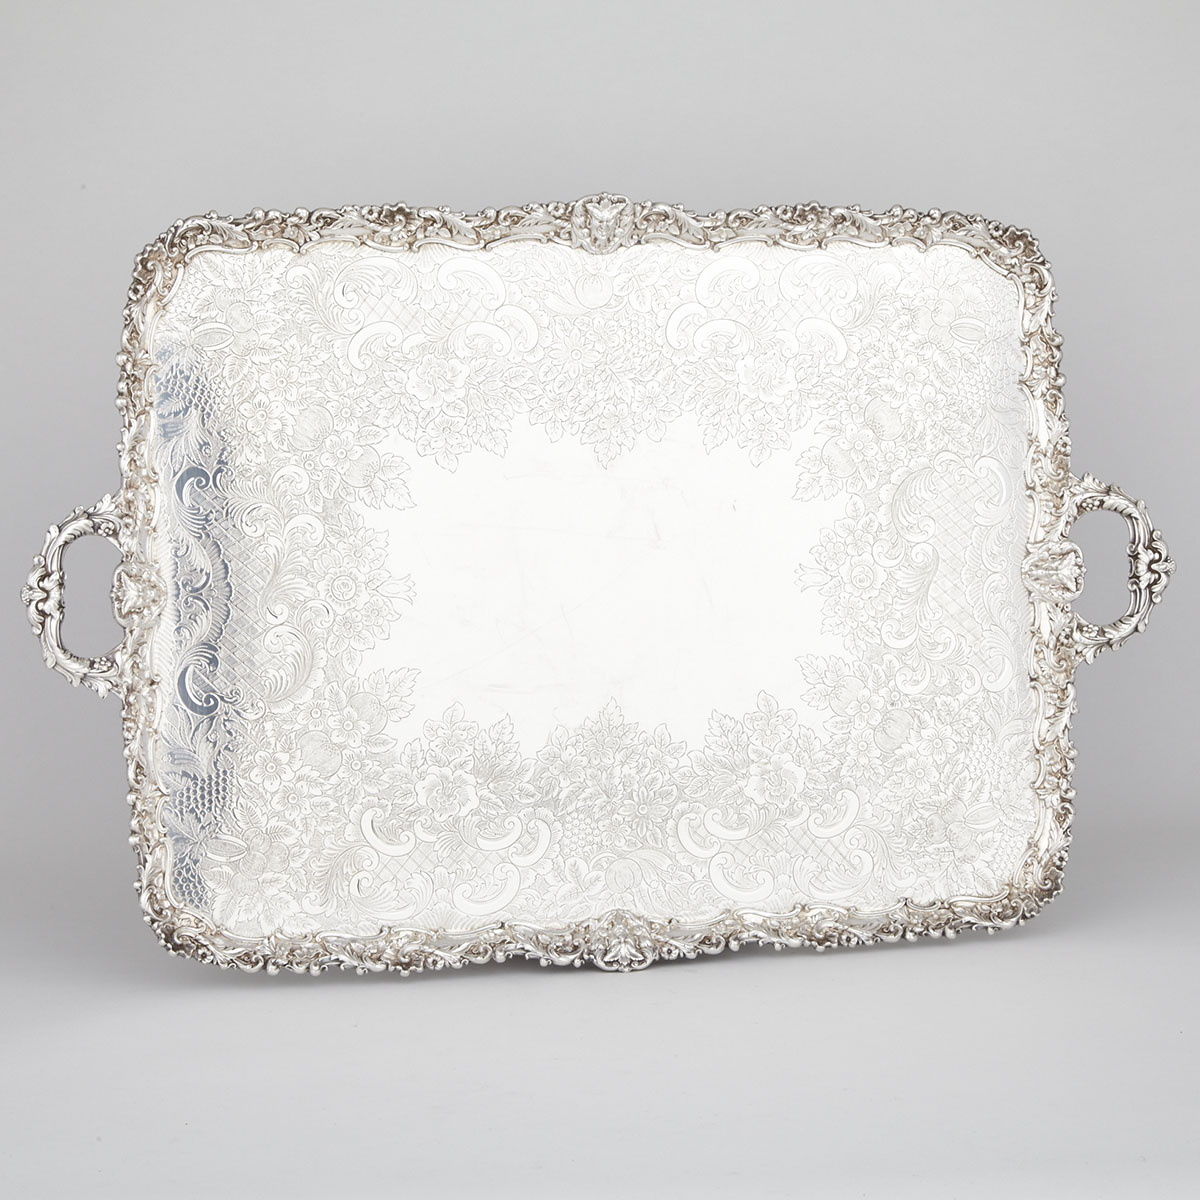 English Silver Plated Two-Handled Rectangular Serving Tray, Barker-Ellis Silver Co., 20th century